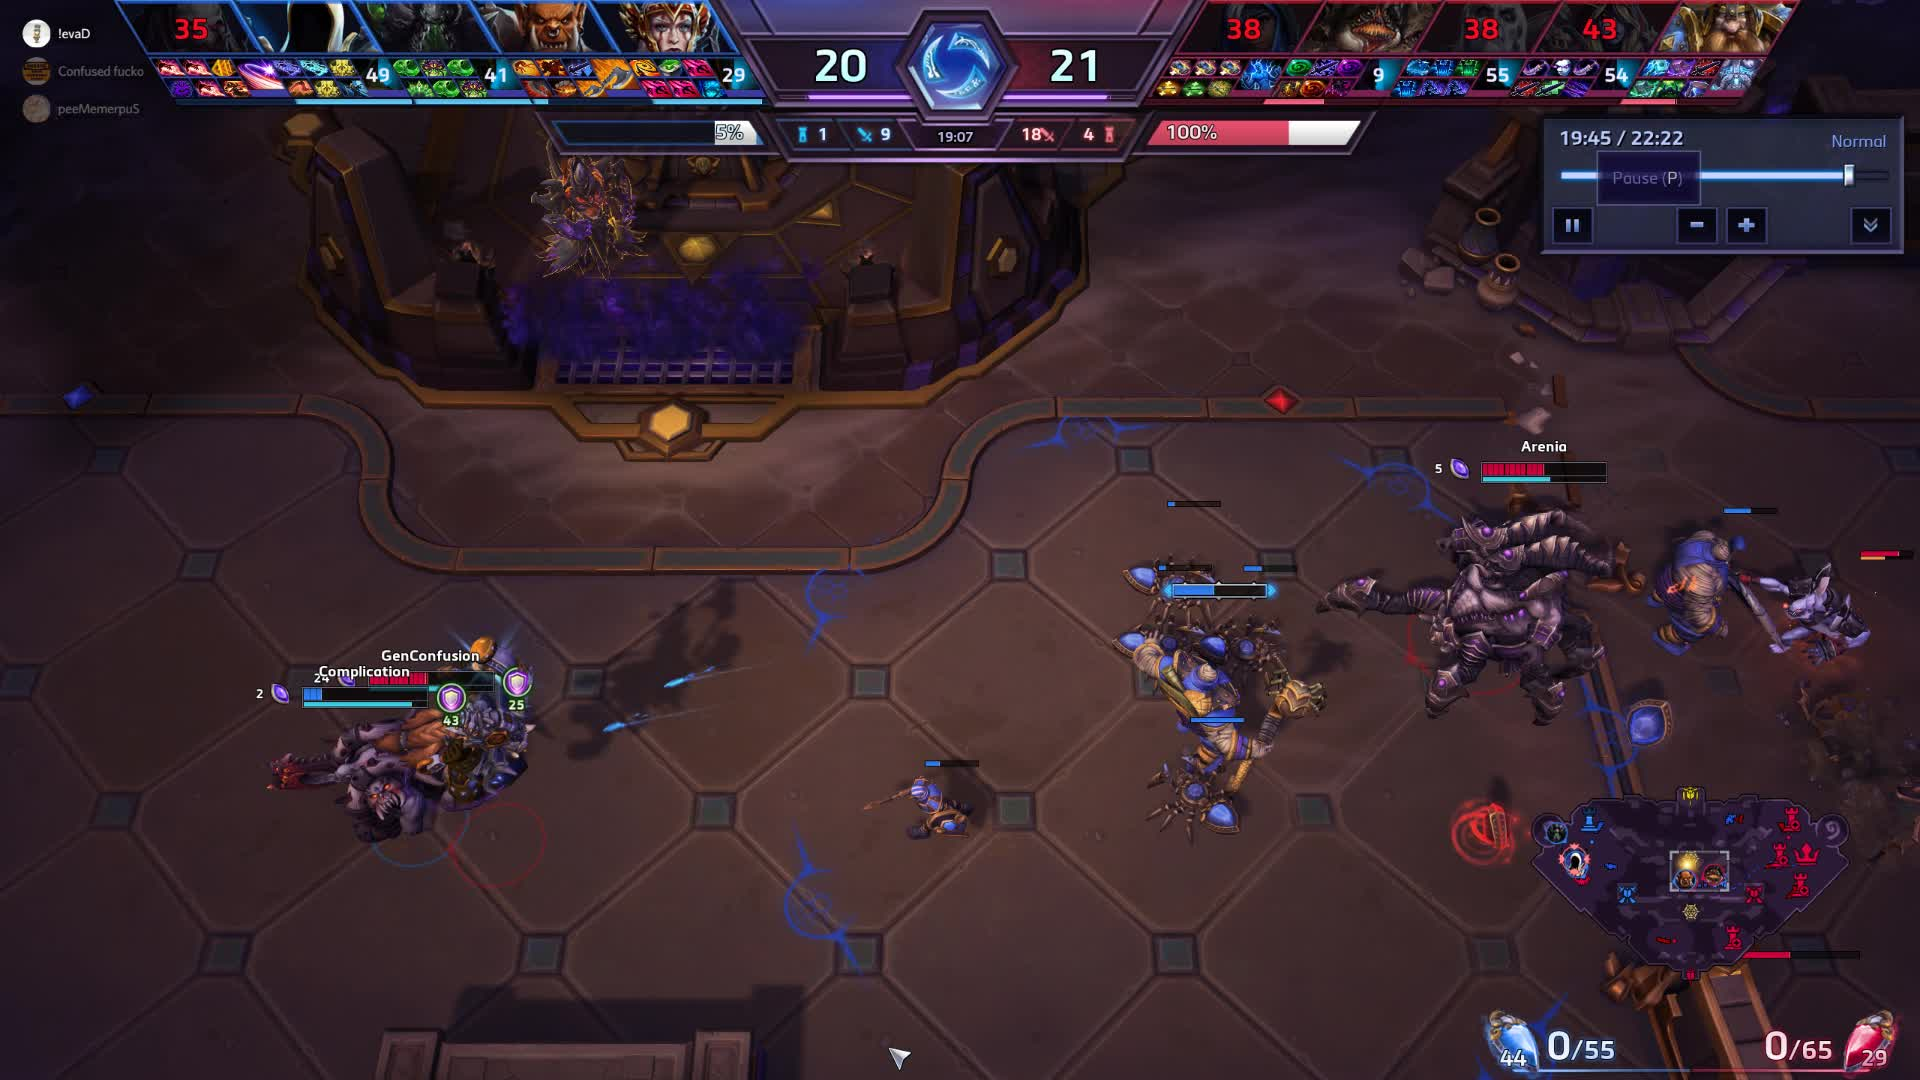 heroesofthestorm, Heroes of the Storm 03.21.2019 - 01.31.18.03 GIFs